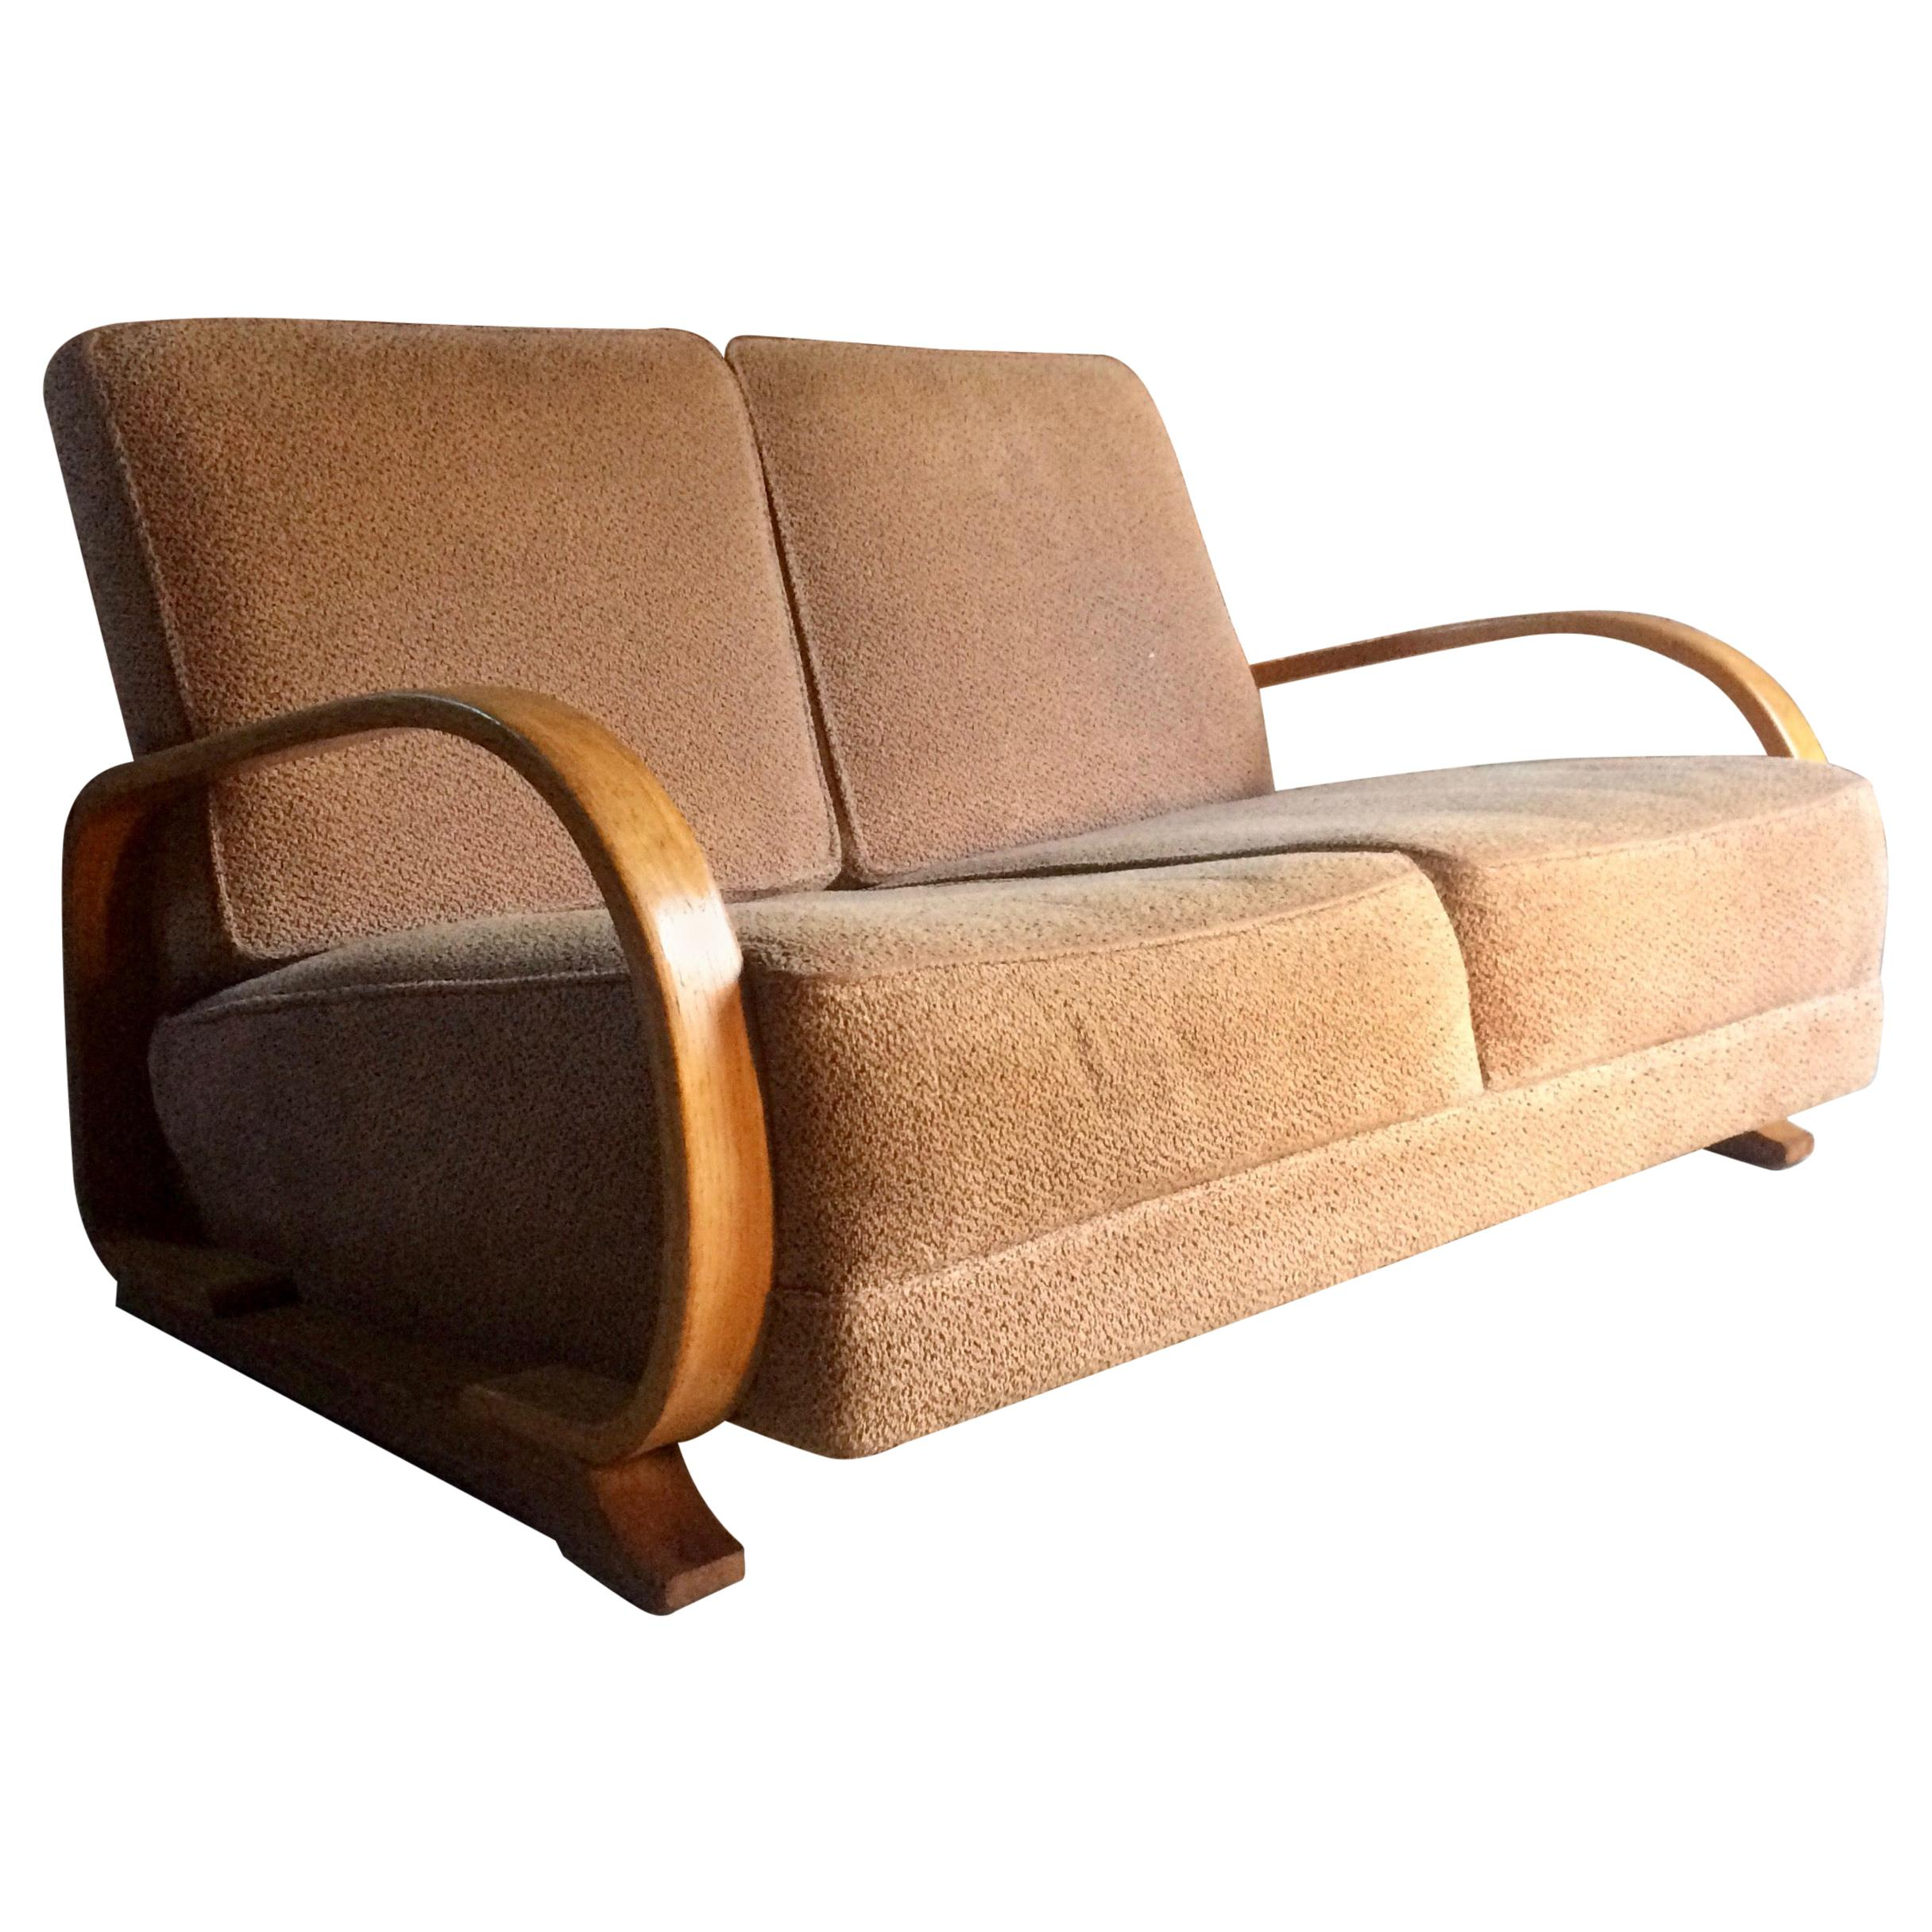 Gilbert Rohde Sofa Settee Two-Seat Art Deco Streamline, circa 1930